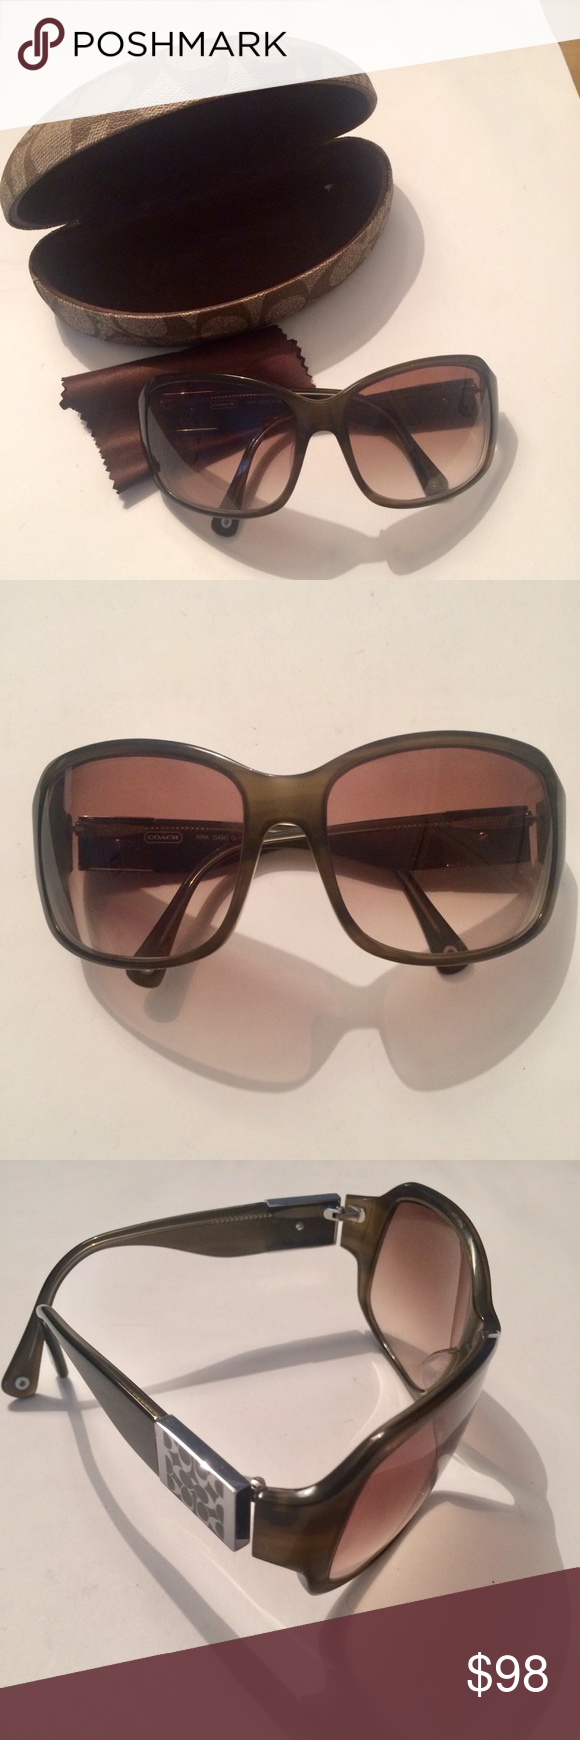 33c6306580b9 ... new zealand coach nina s494 olive sunglasses like new no scratches.  silver and tan 1beda